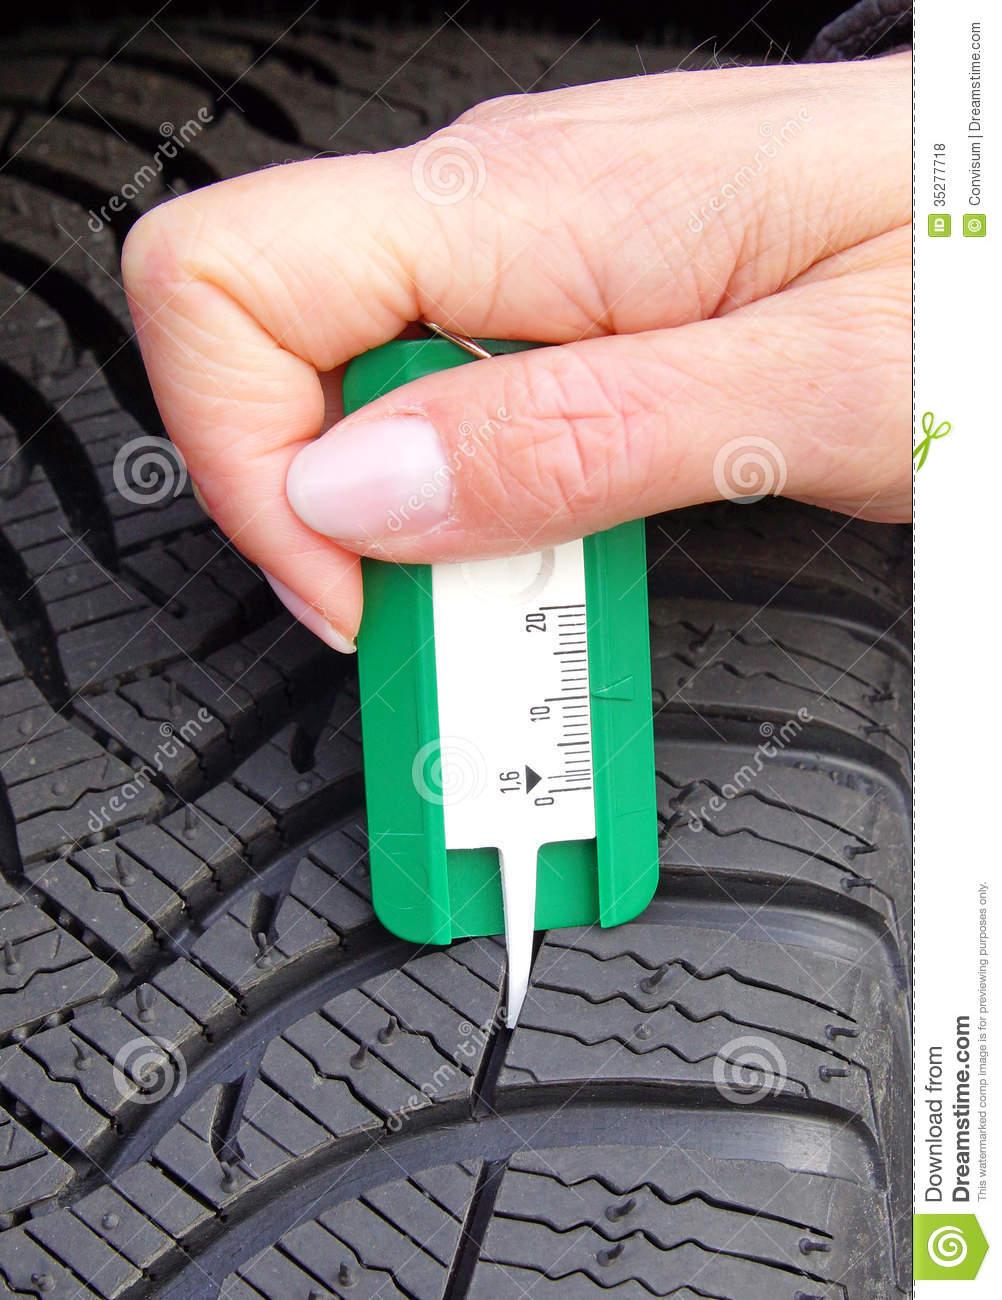 How To Measure Tire Tread >> Measuring Tread In Winter Tyre Stock Photo Image Of Hand Safety